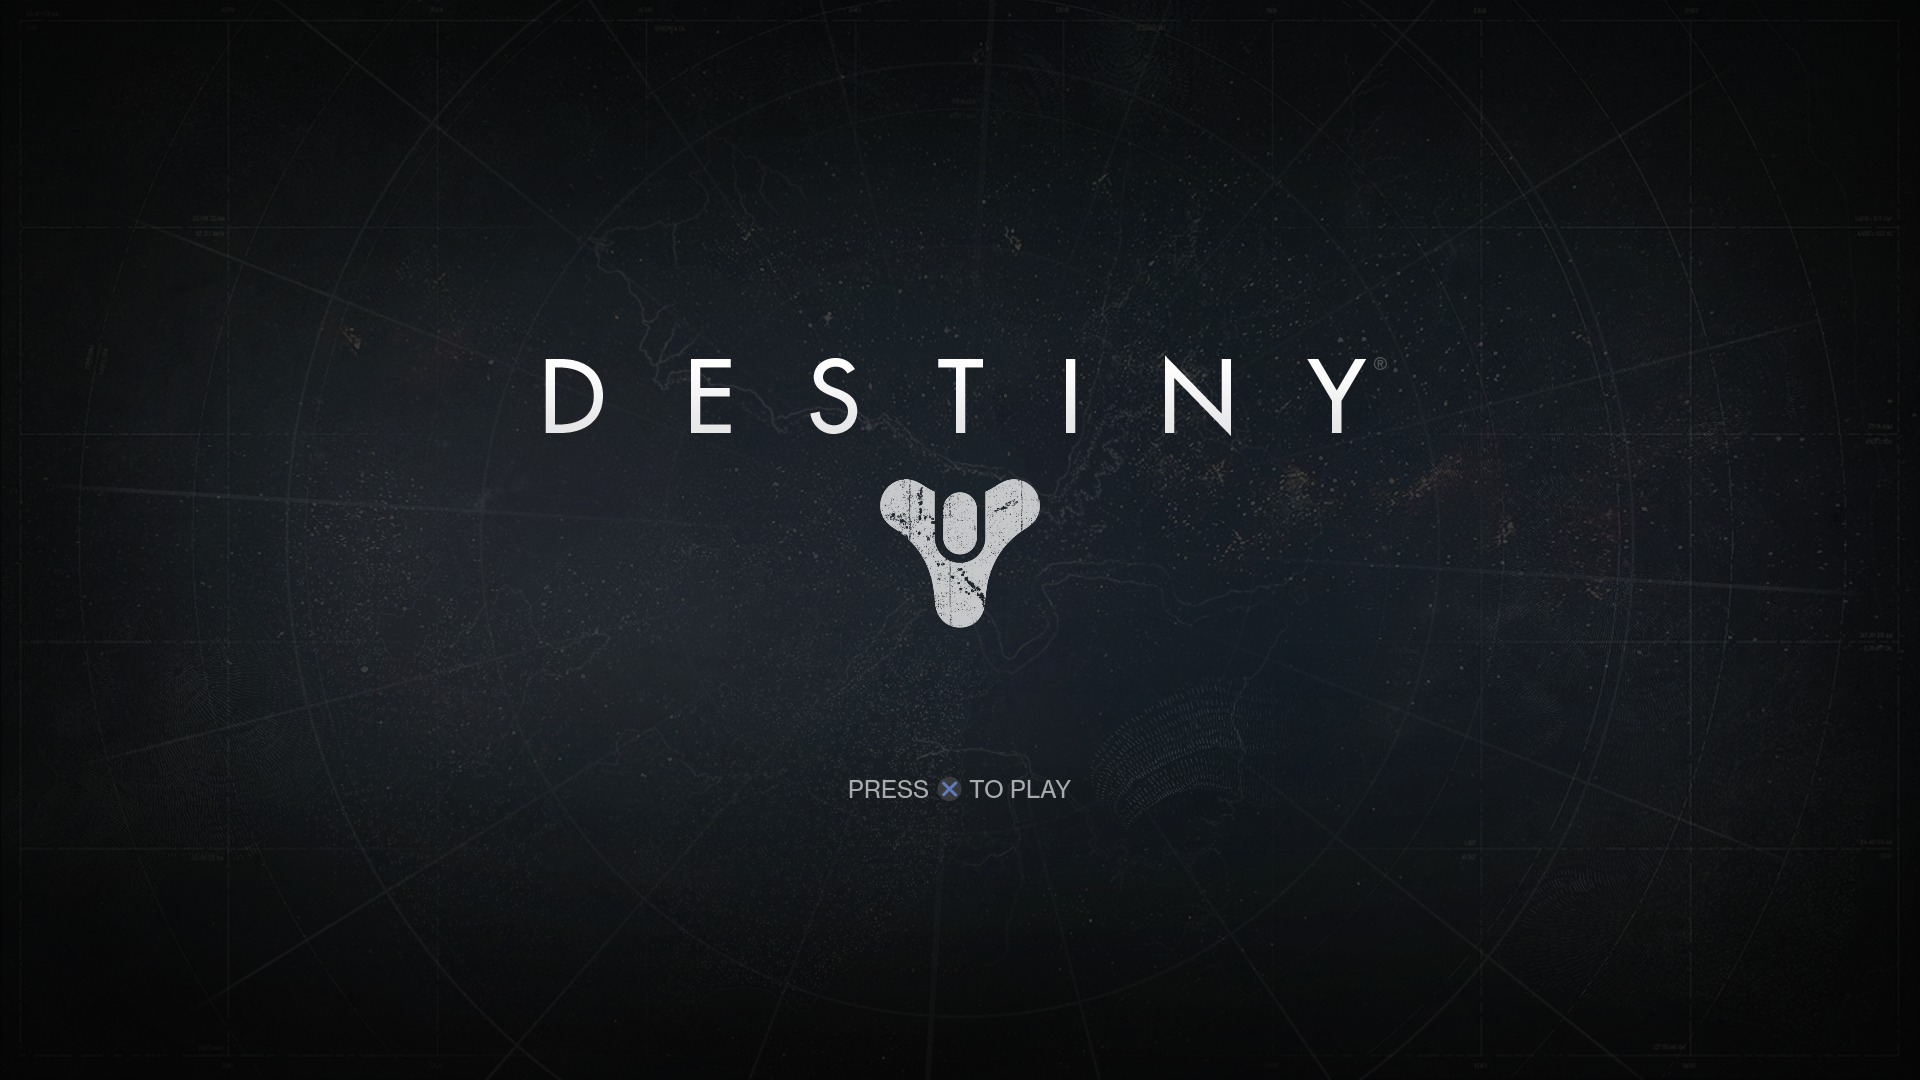 'Destiny': 90 Percent Style, 10 Percent Substance, All Missed Opportunity